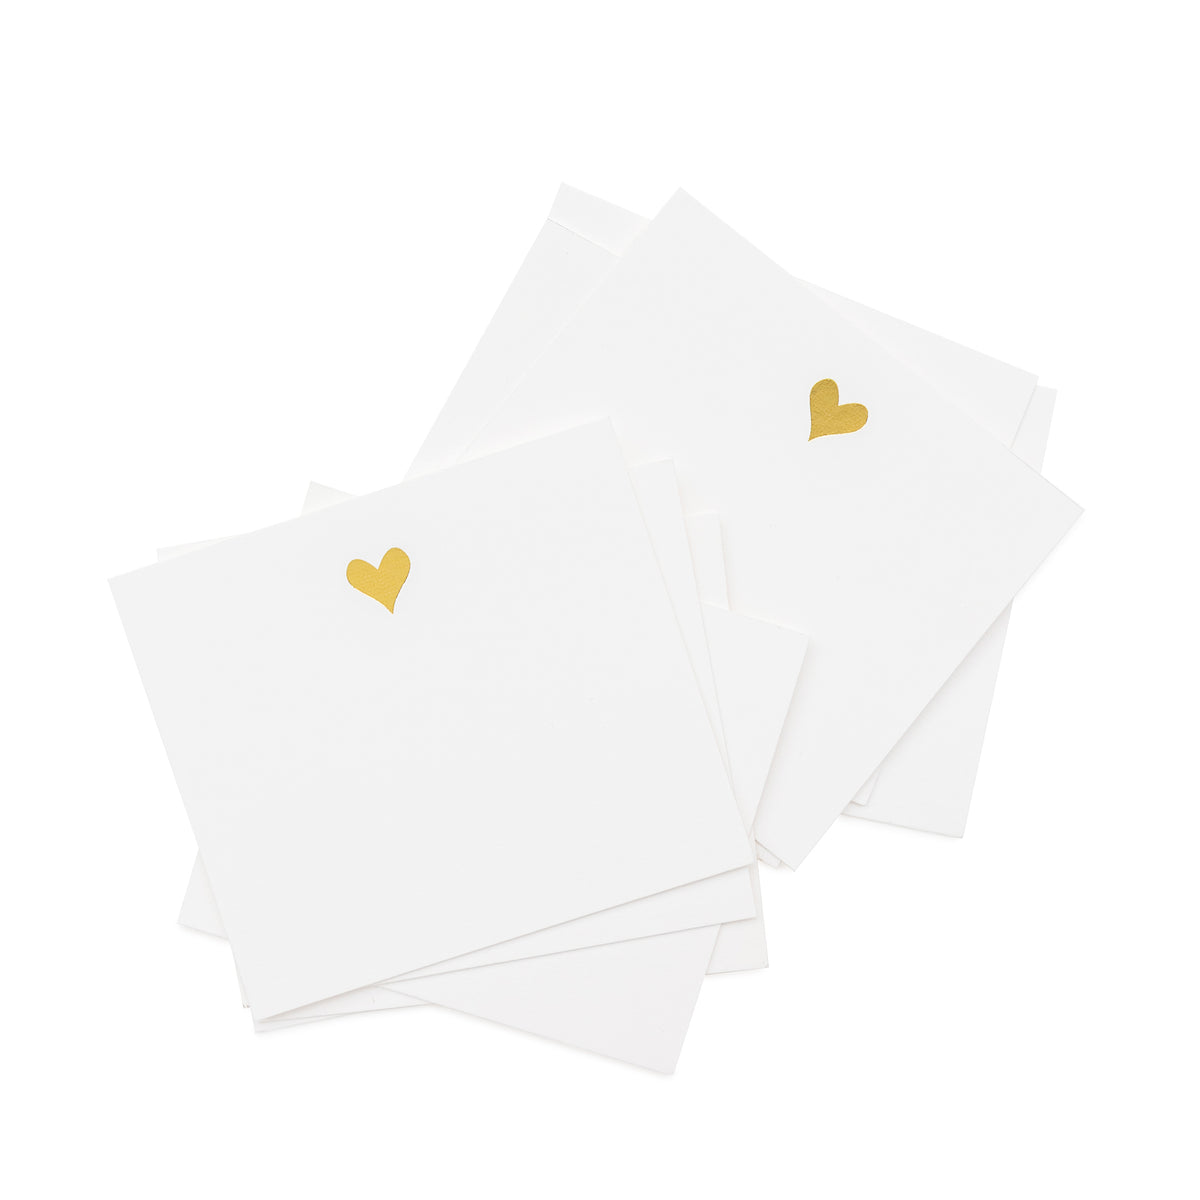 Tiny lunch box notes with gold foil heart